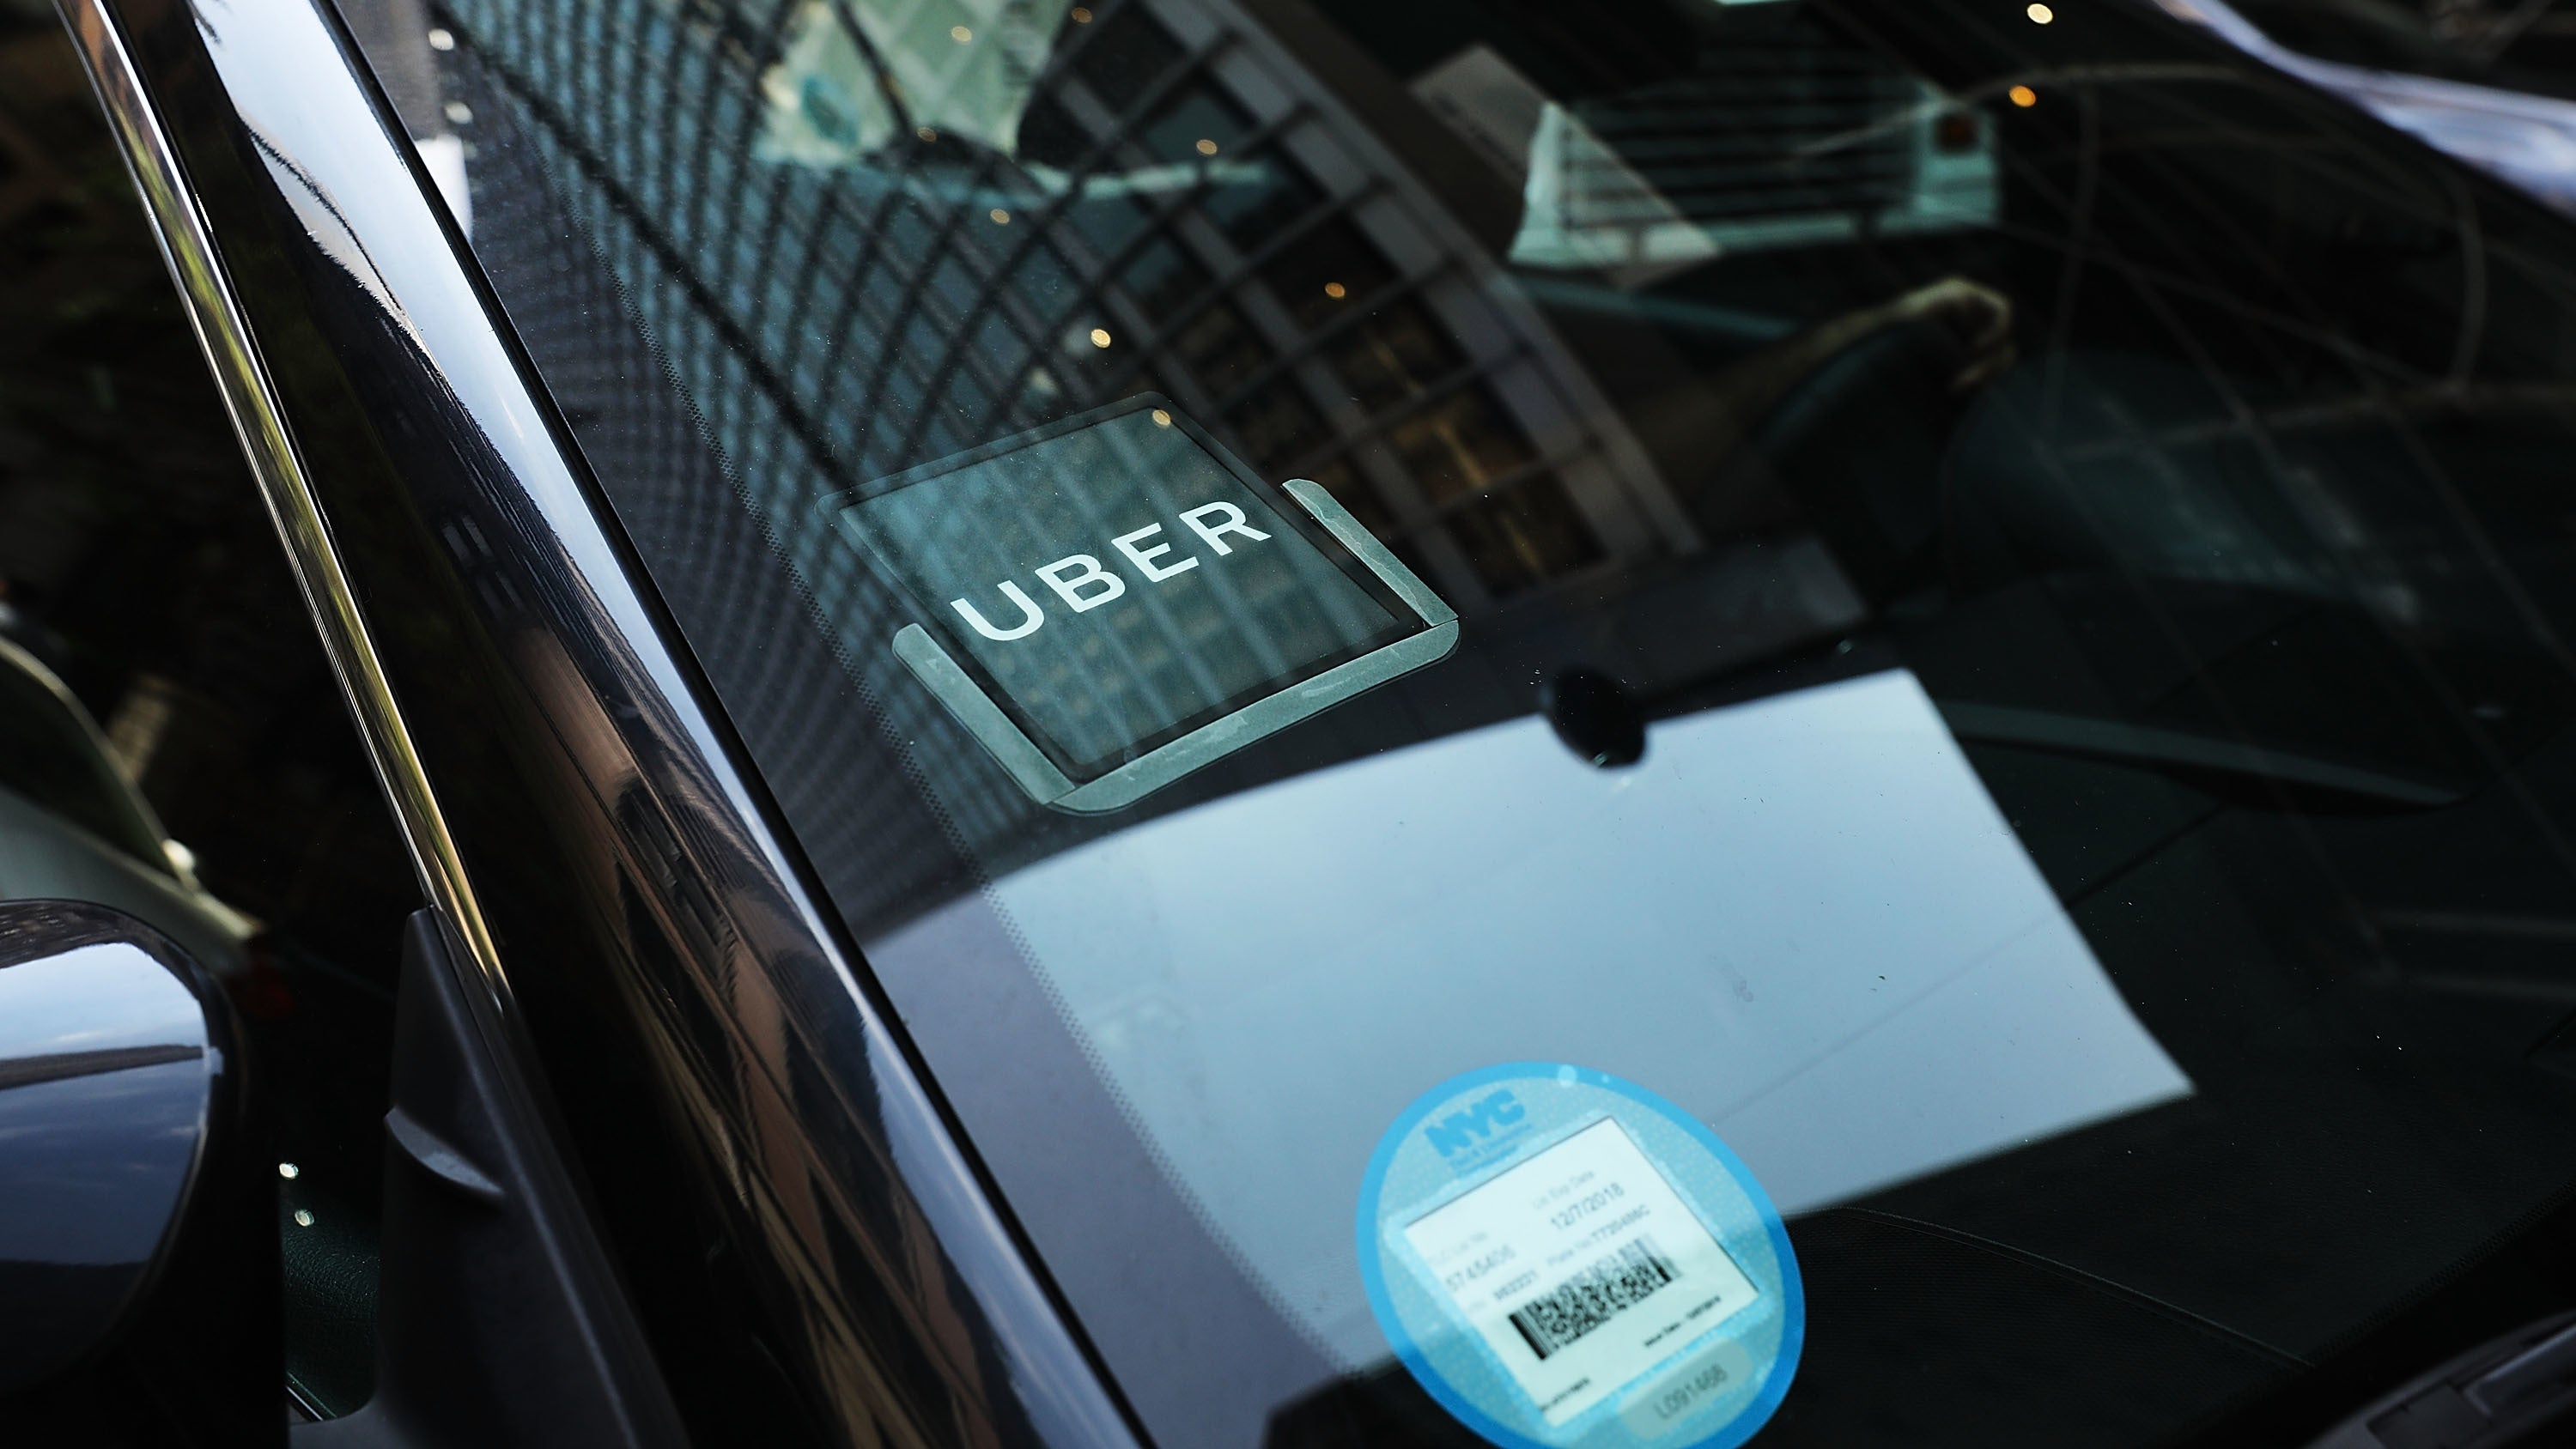 Uber Investigates Itself For Bribery, Finds Some Crap: Report